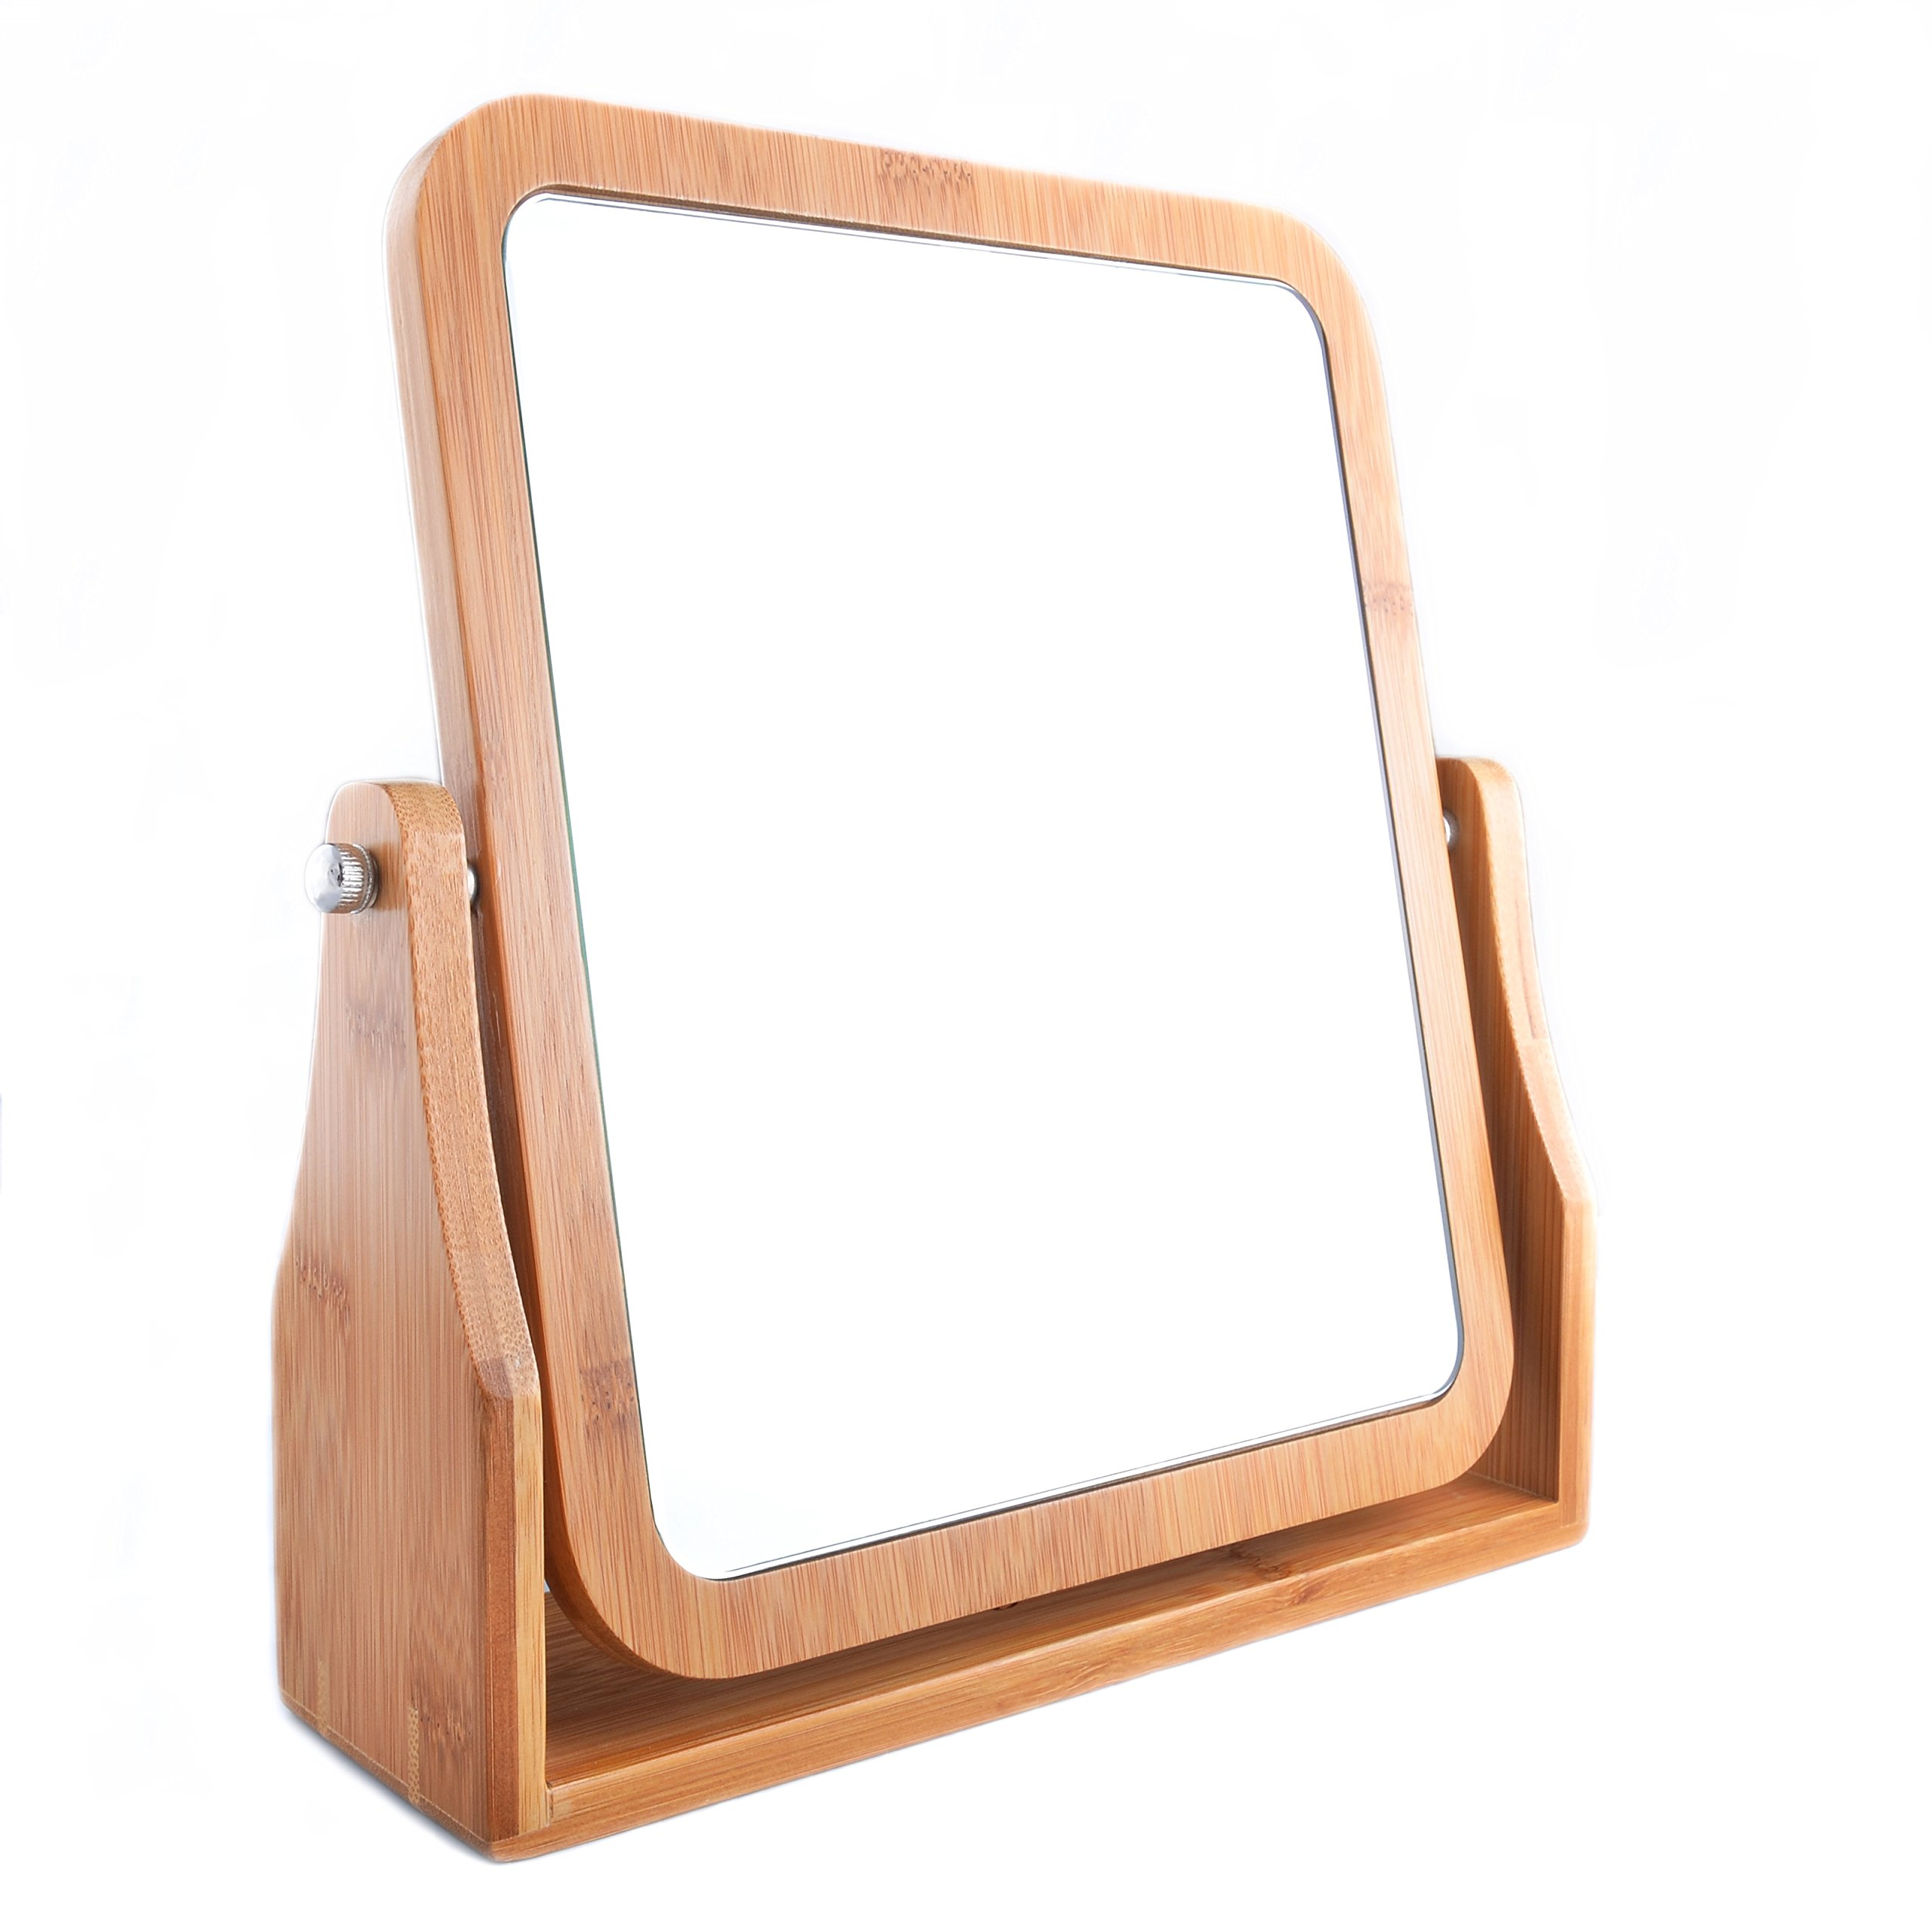 Refine Bamboo Vanity Mirror, 360 swivel, dual-sided 1x/3x magnification for makeup for tabletop, bathroom, countertop (Large)